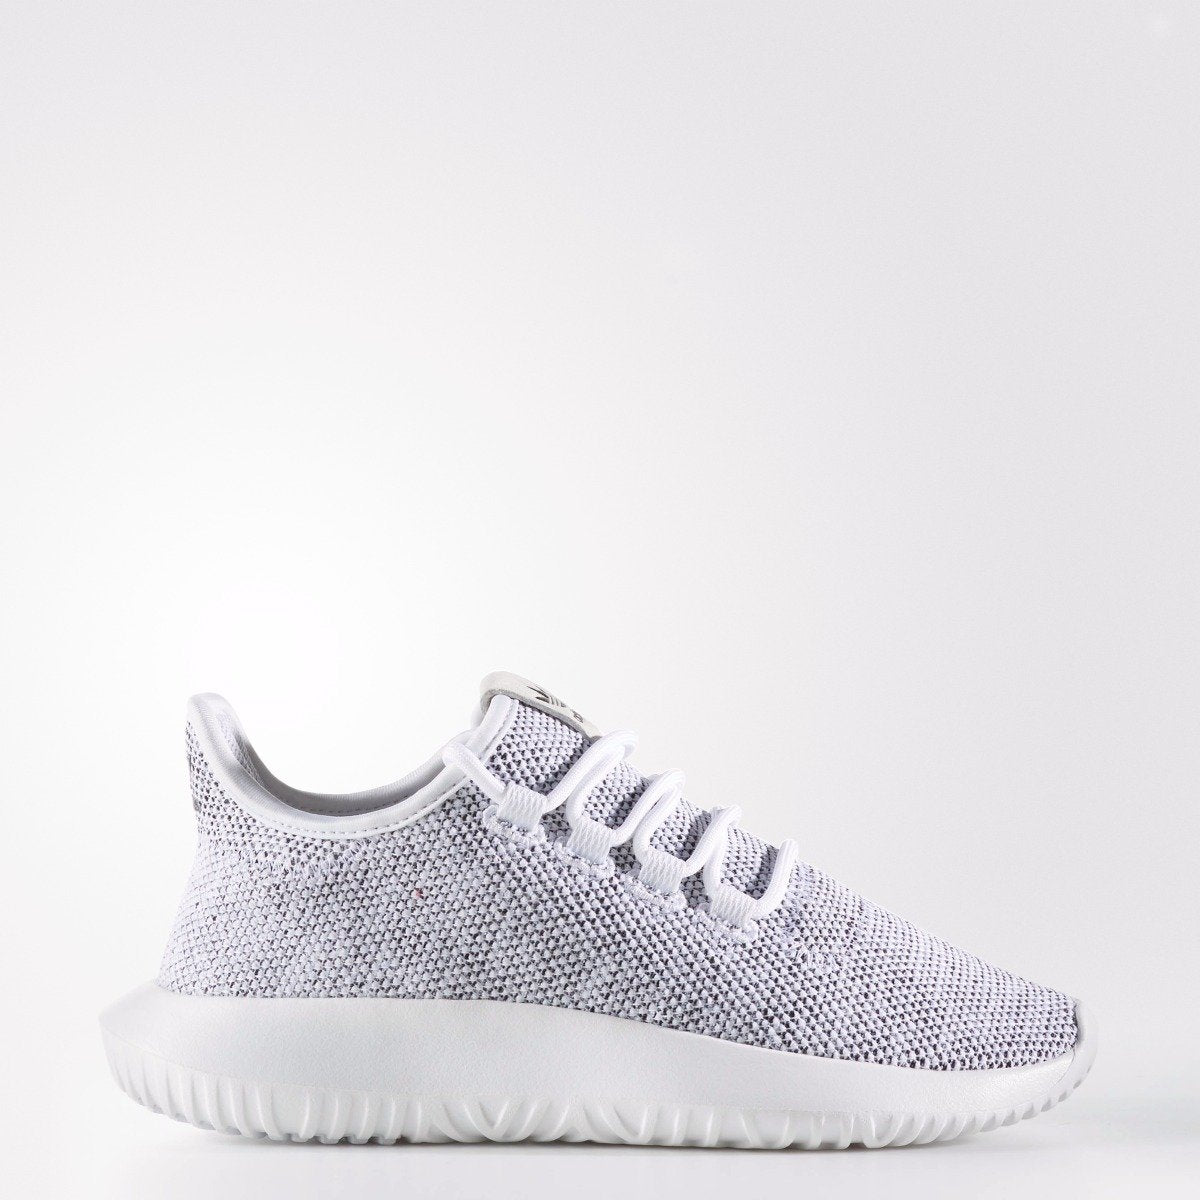 competitive price 37773 ef3a1 Kid's adidas Originals Tubular Shadow Shoes Grey - 10K / GRAY